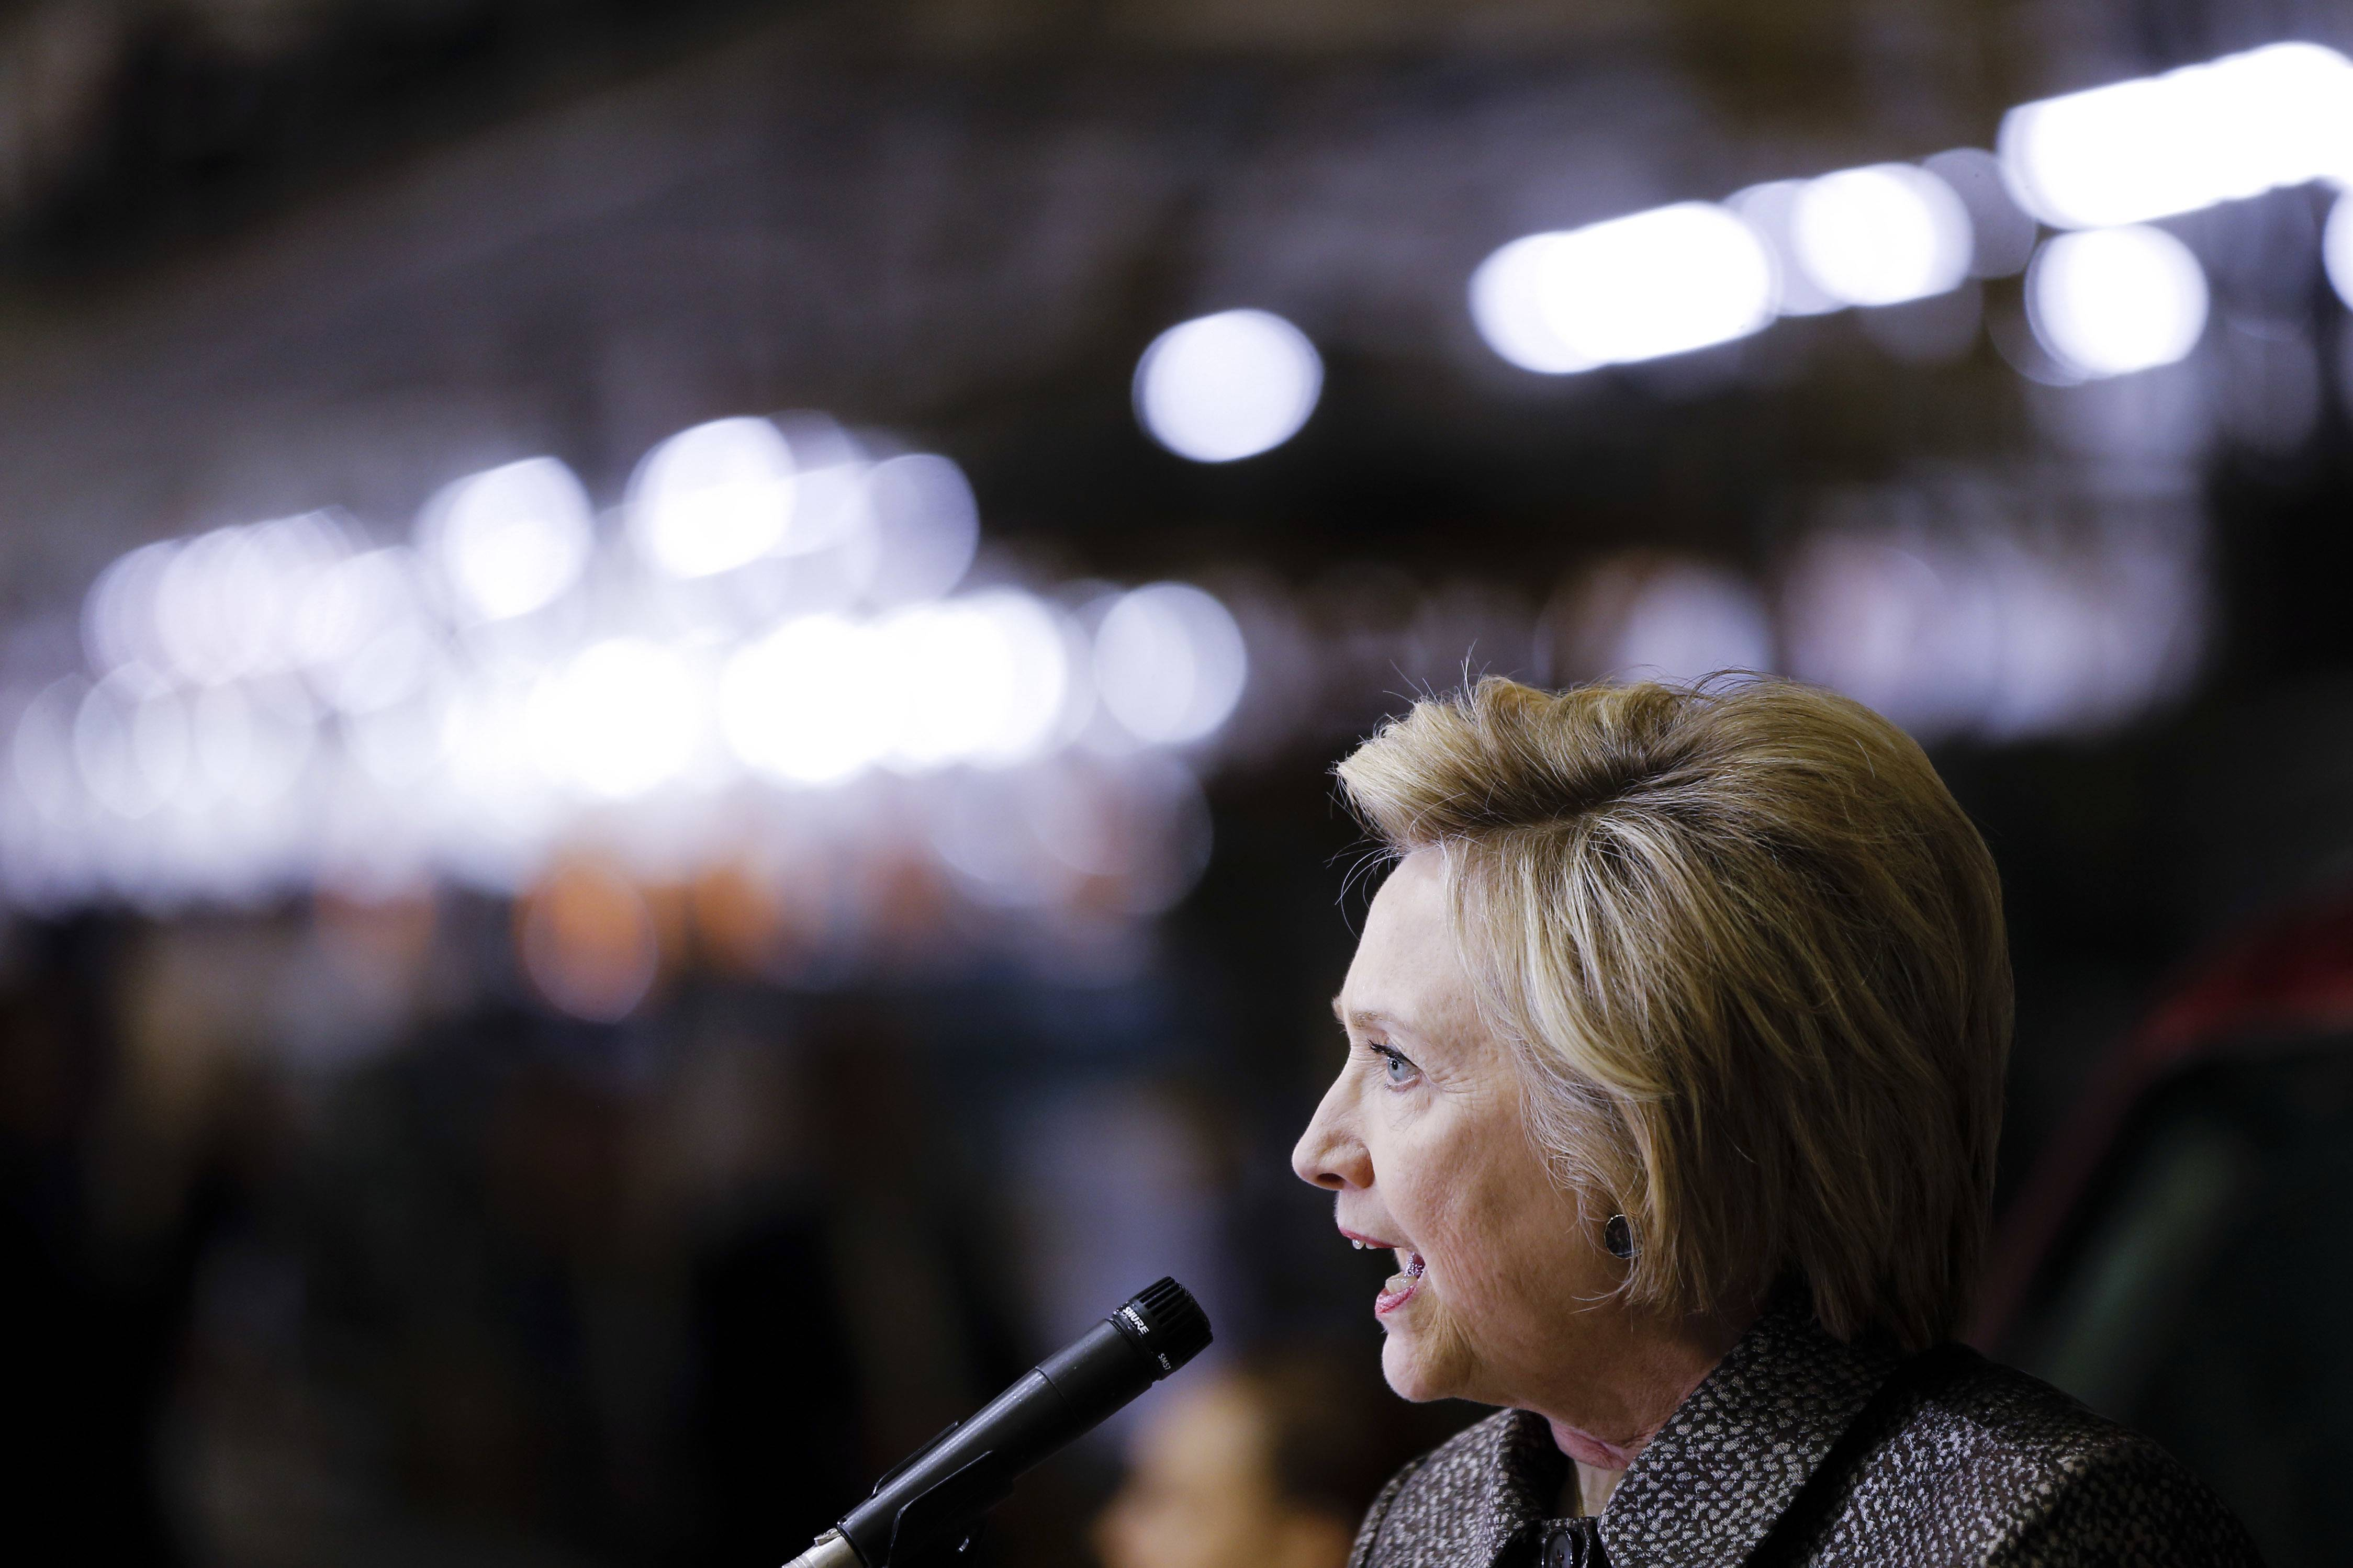 Democratic presidential candidate Hillary Clinton speaks during a campaign stop at an AM General plant, Tuesday, April 26, 2016, in Mishawaka, Ind. (AP Photo/Matt Rourke)